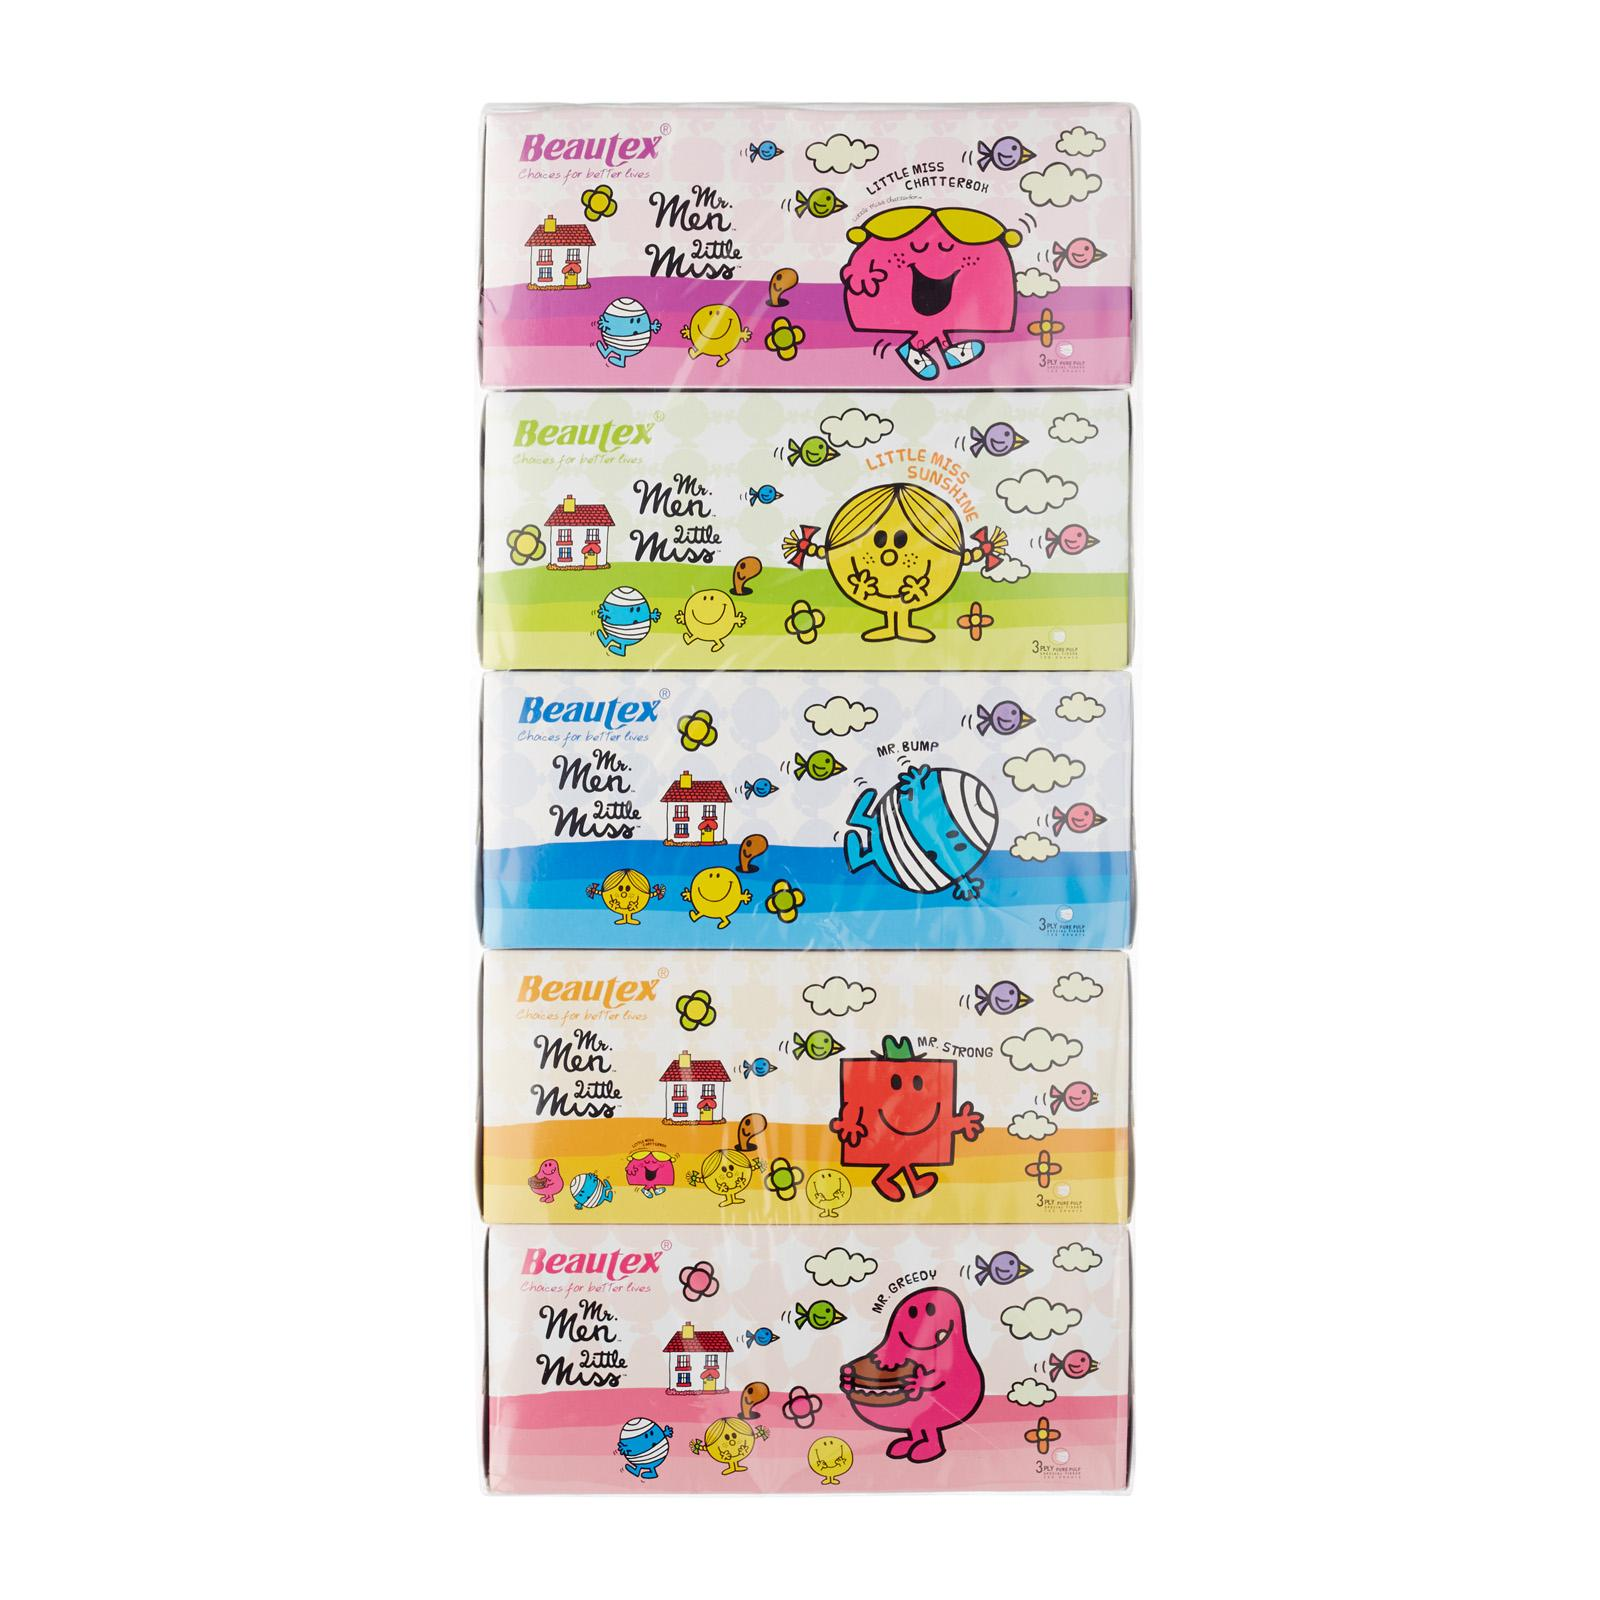 Beautex Mr Men and Little Miss Pure Pulp 3ply Box Tissue